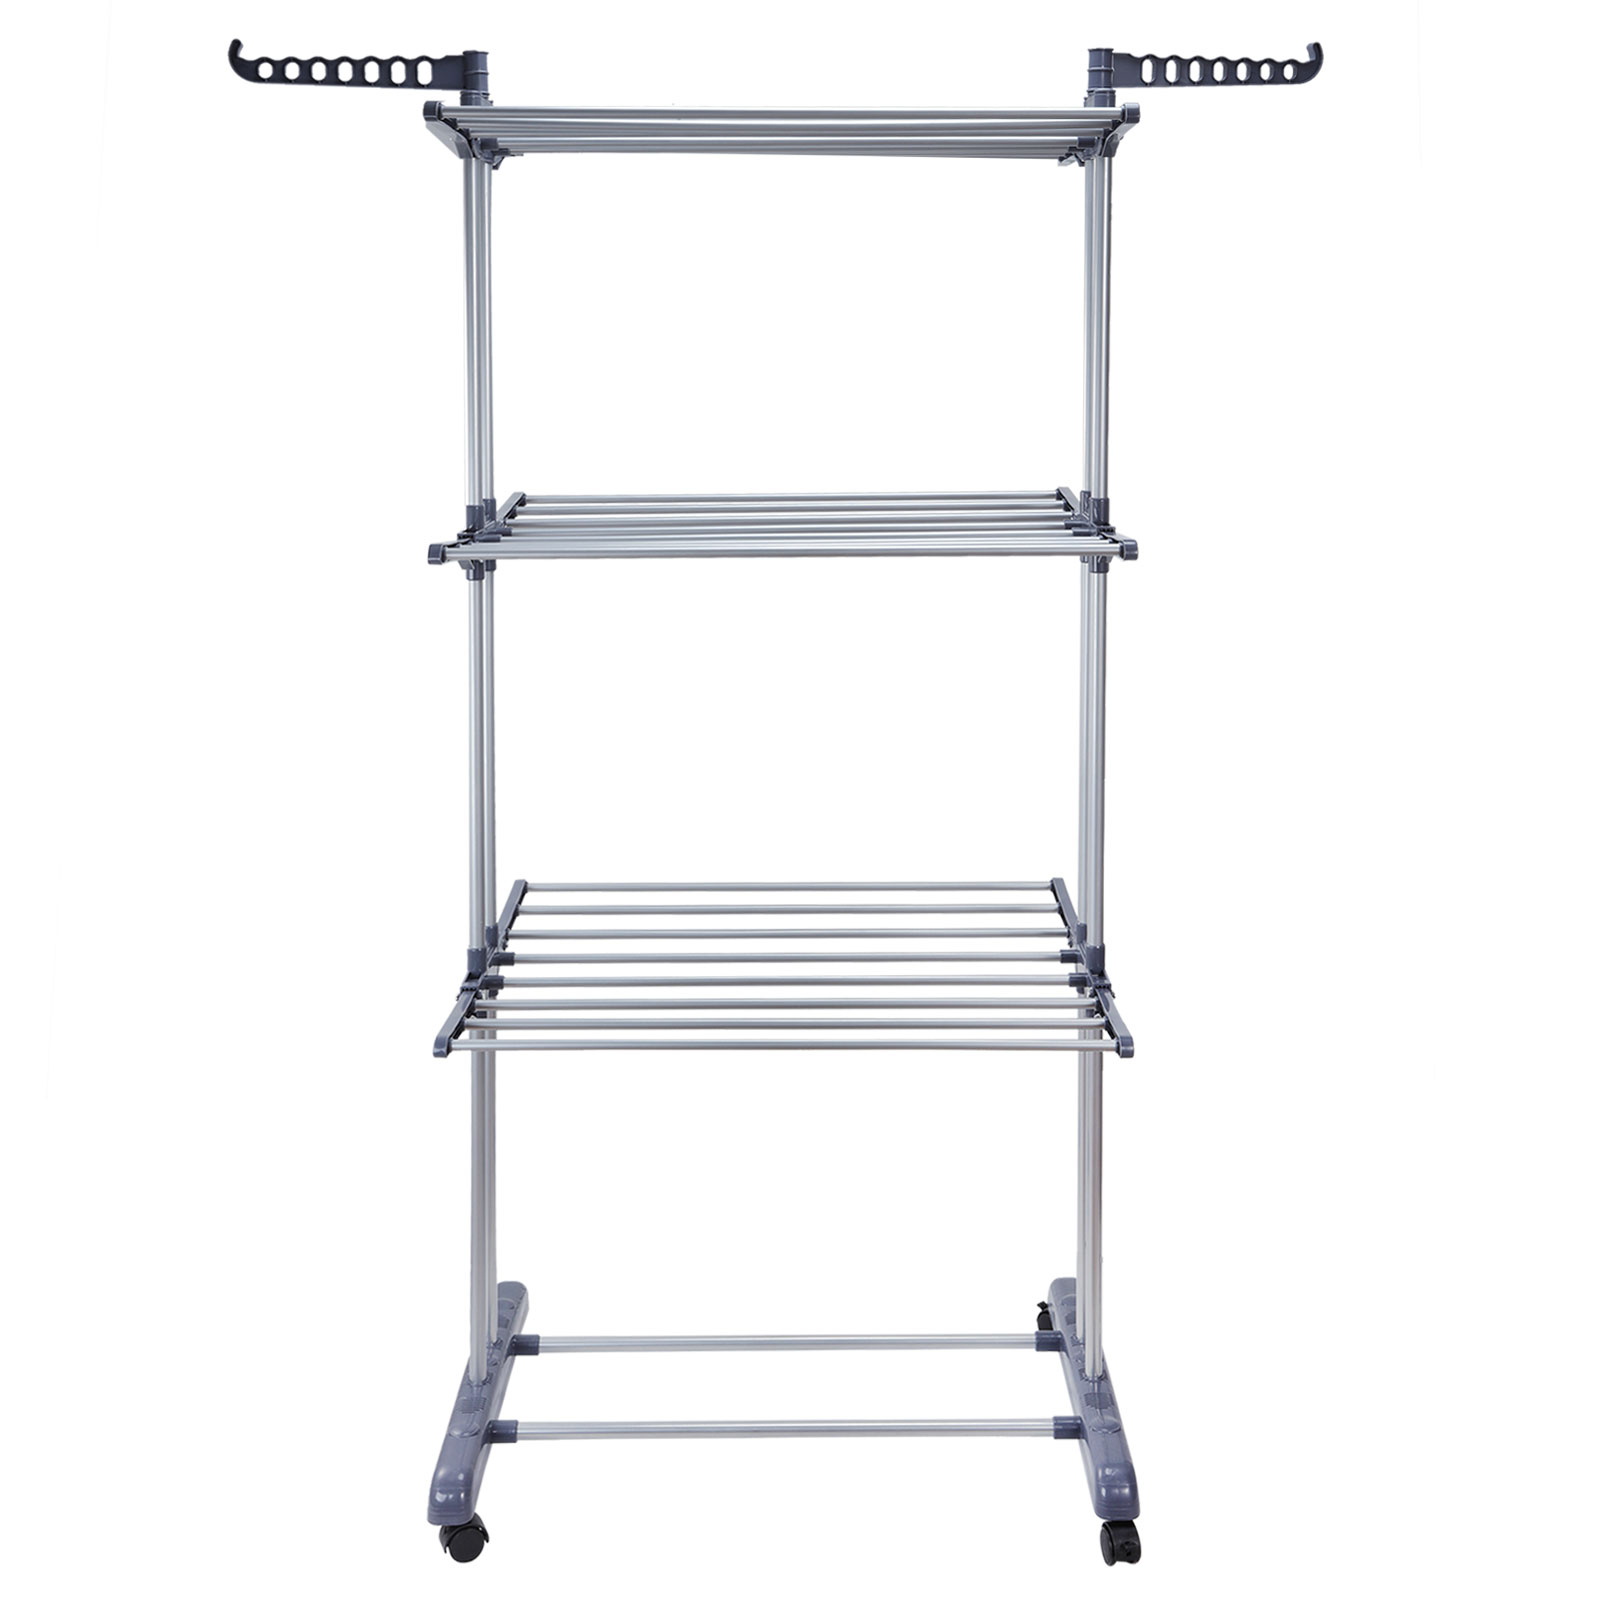 Foldable 3 Tier Clothes Airer Laundry Dryer Rack Indoor